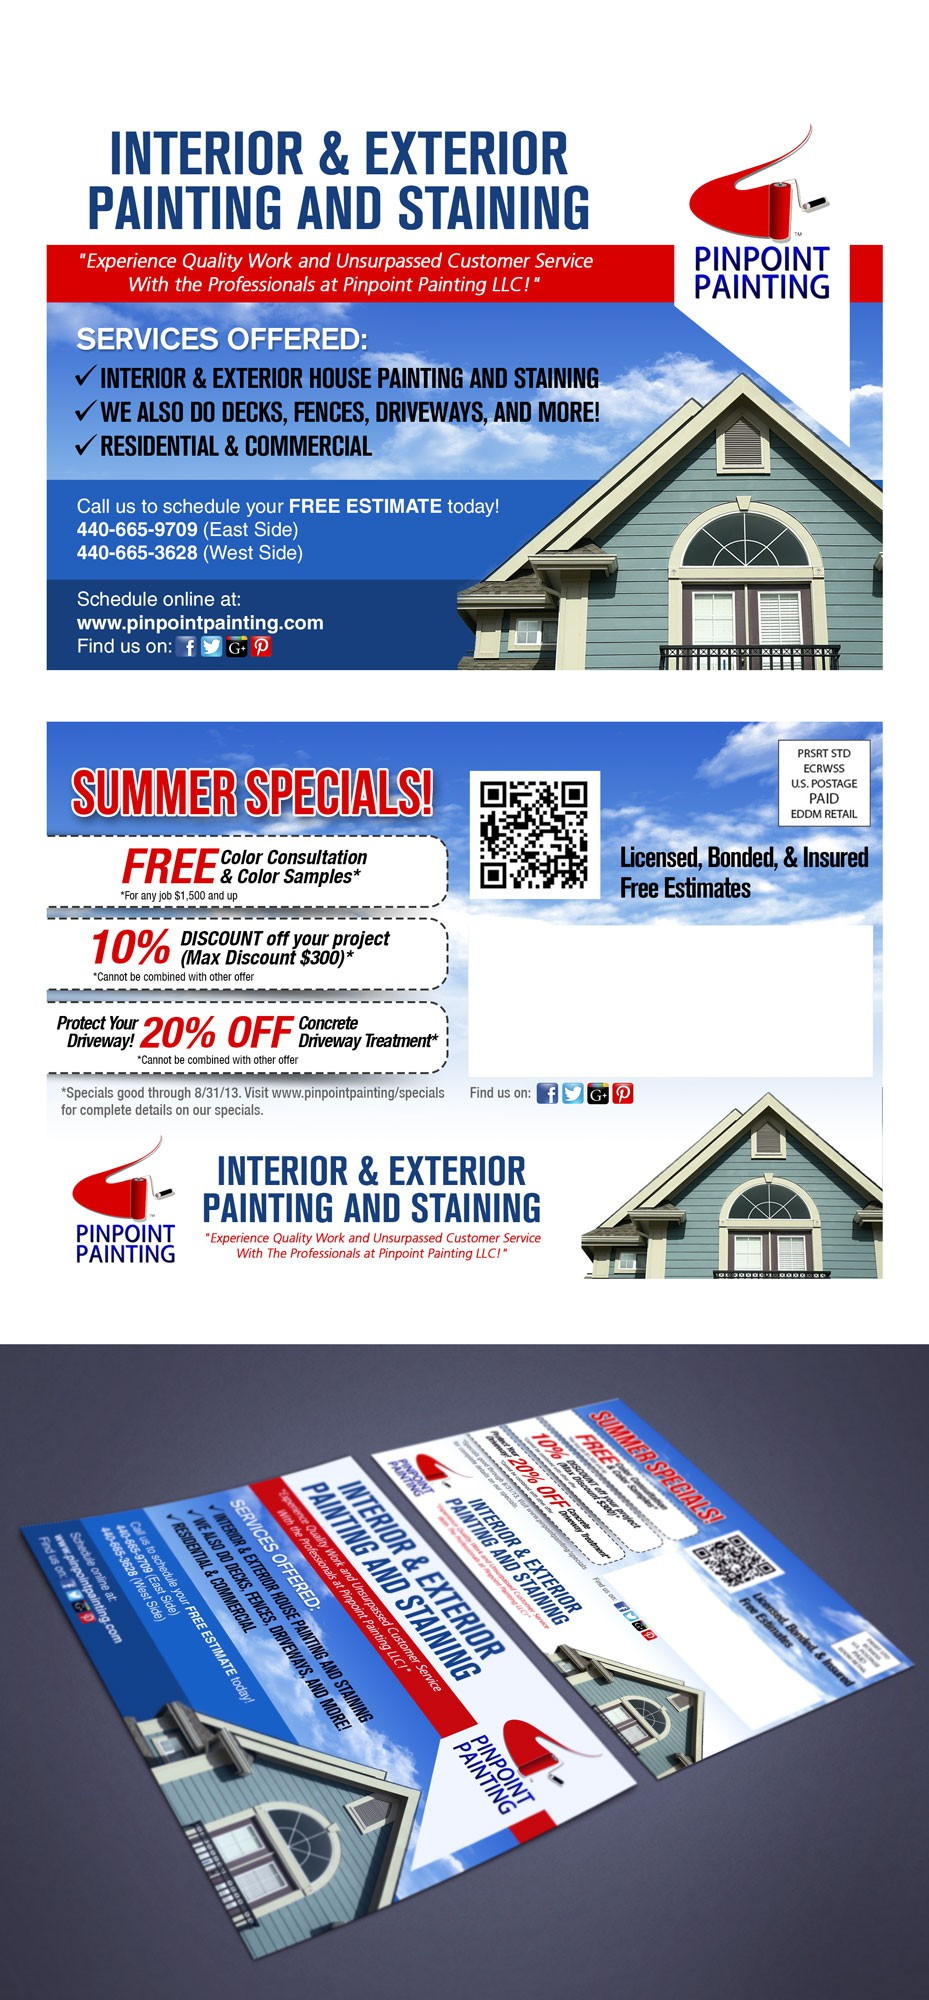 Create the next postcard or flyer for Pinpoint Painting LLC